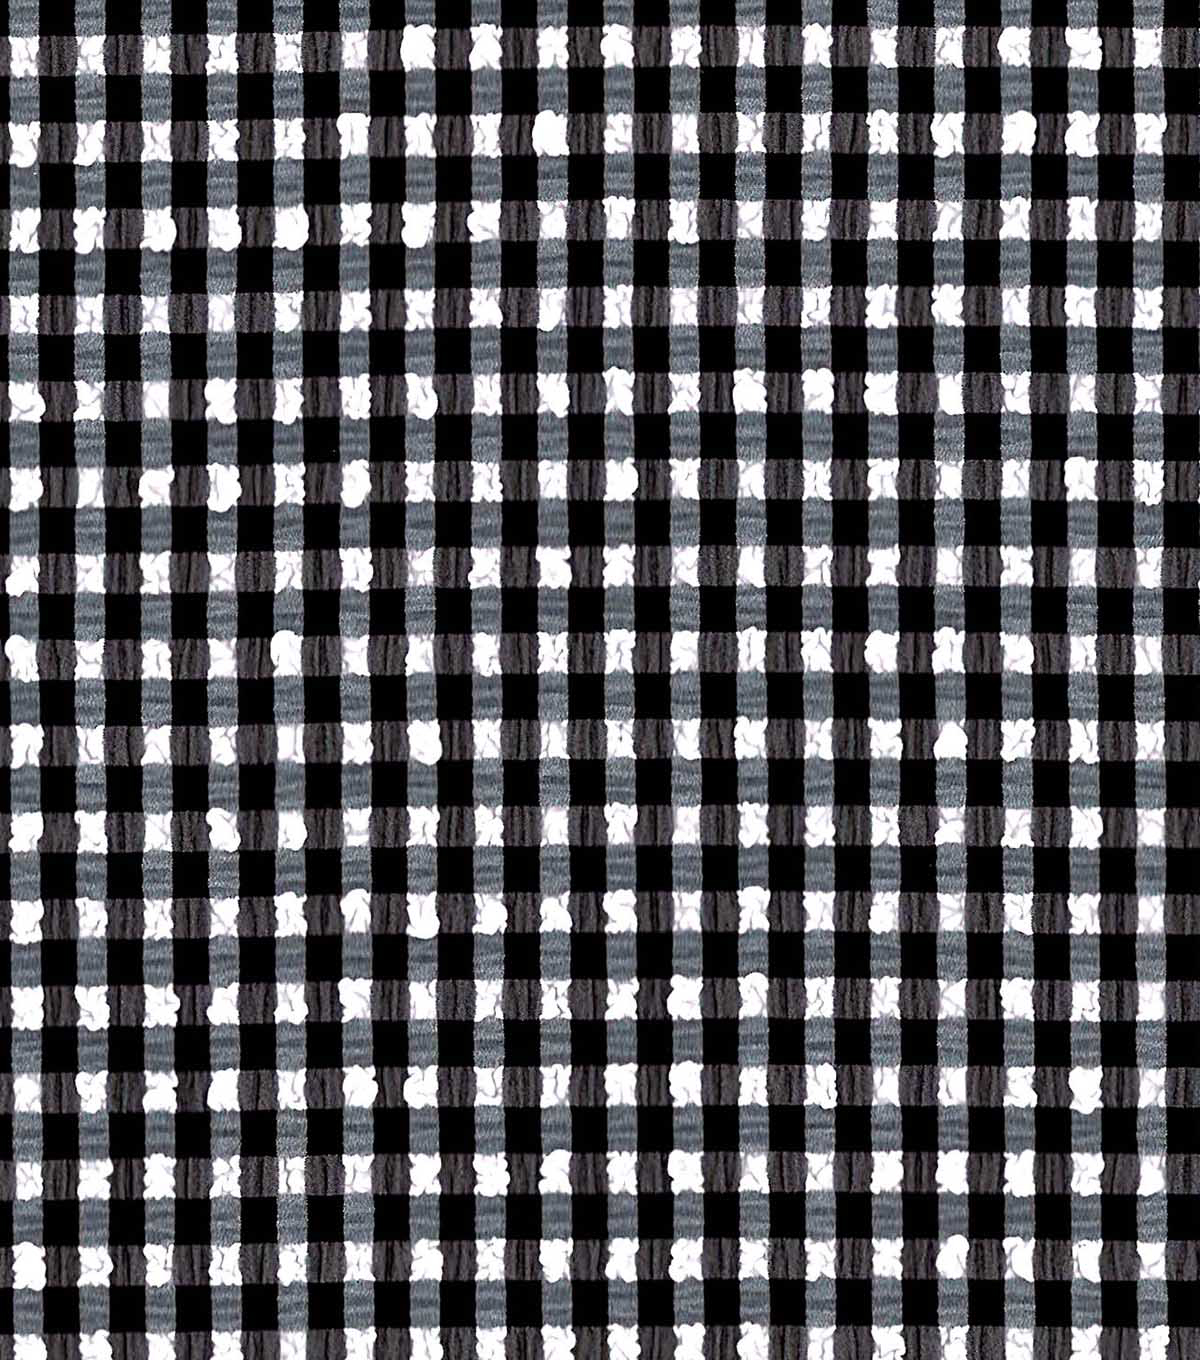 Performance Fabric Swim Seersucker Gingham Black White Joann